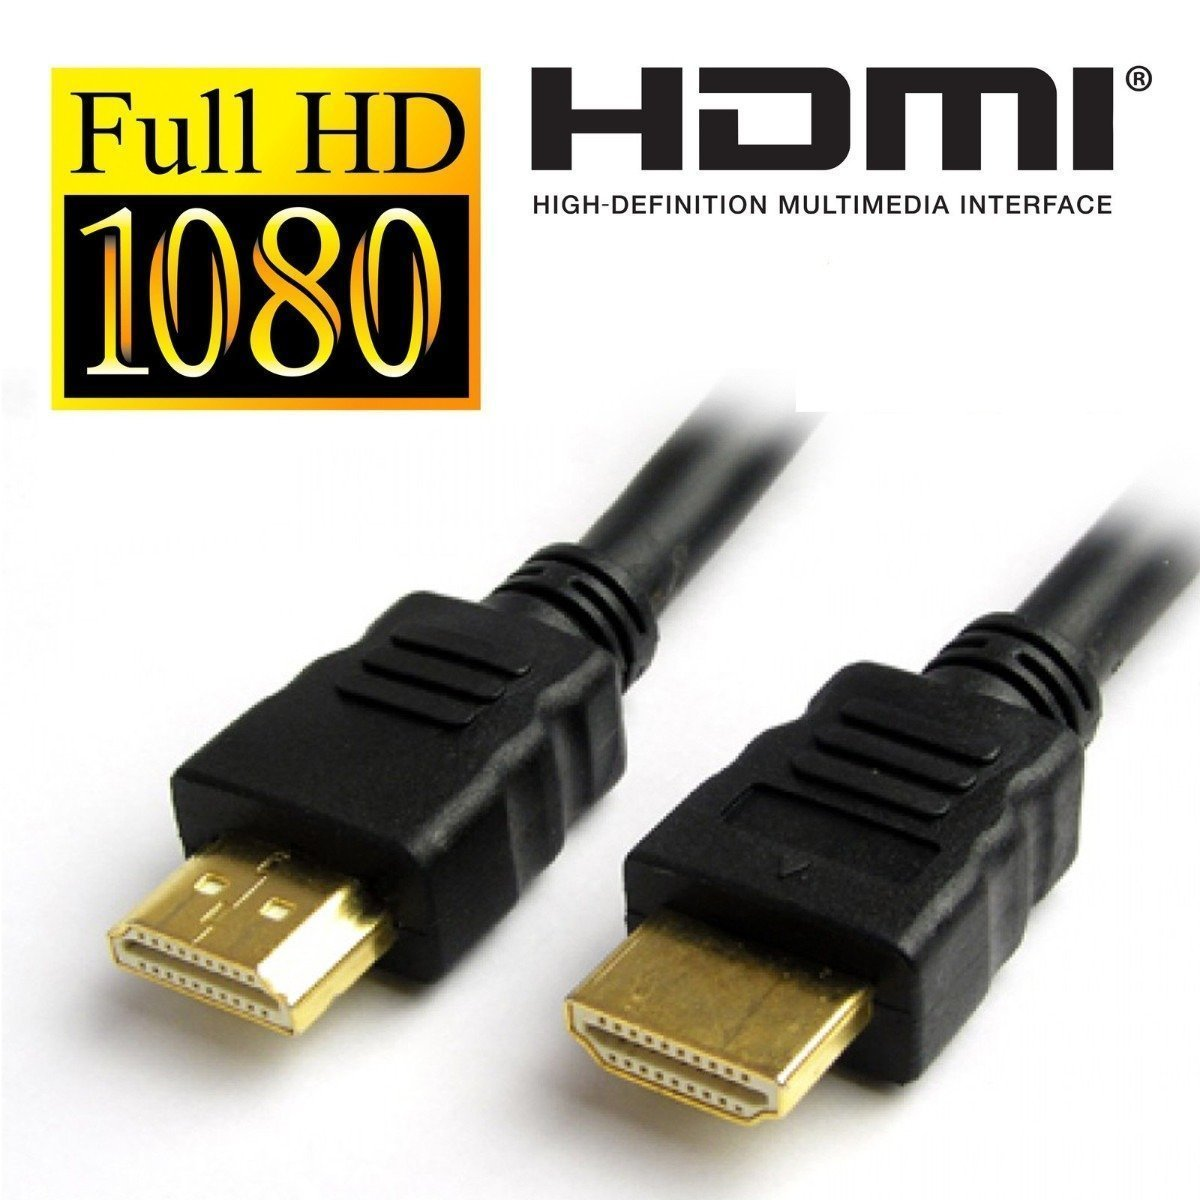 WireSwipe 1.4V High-Speed Black HDMI Cable